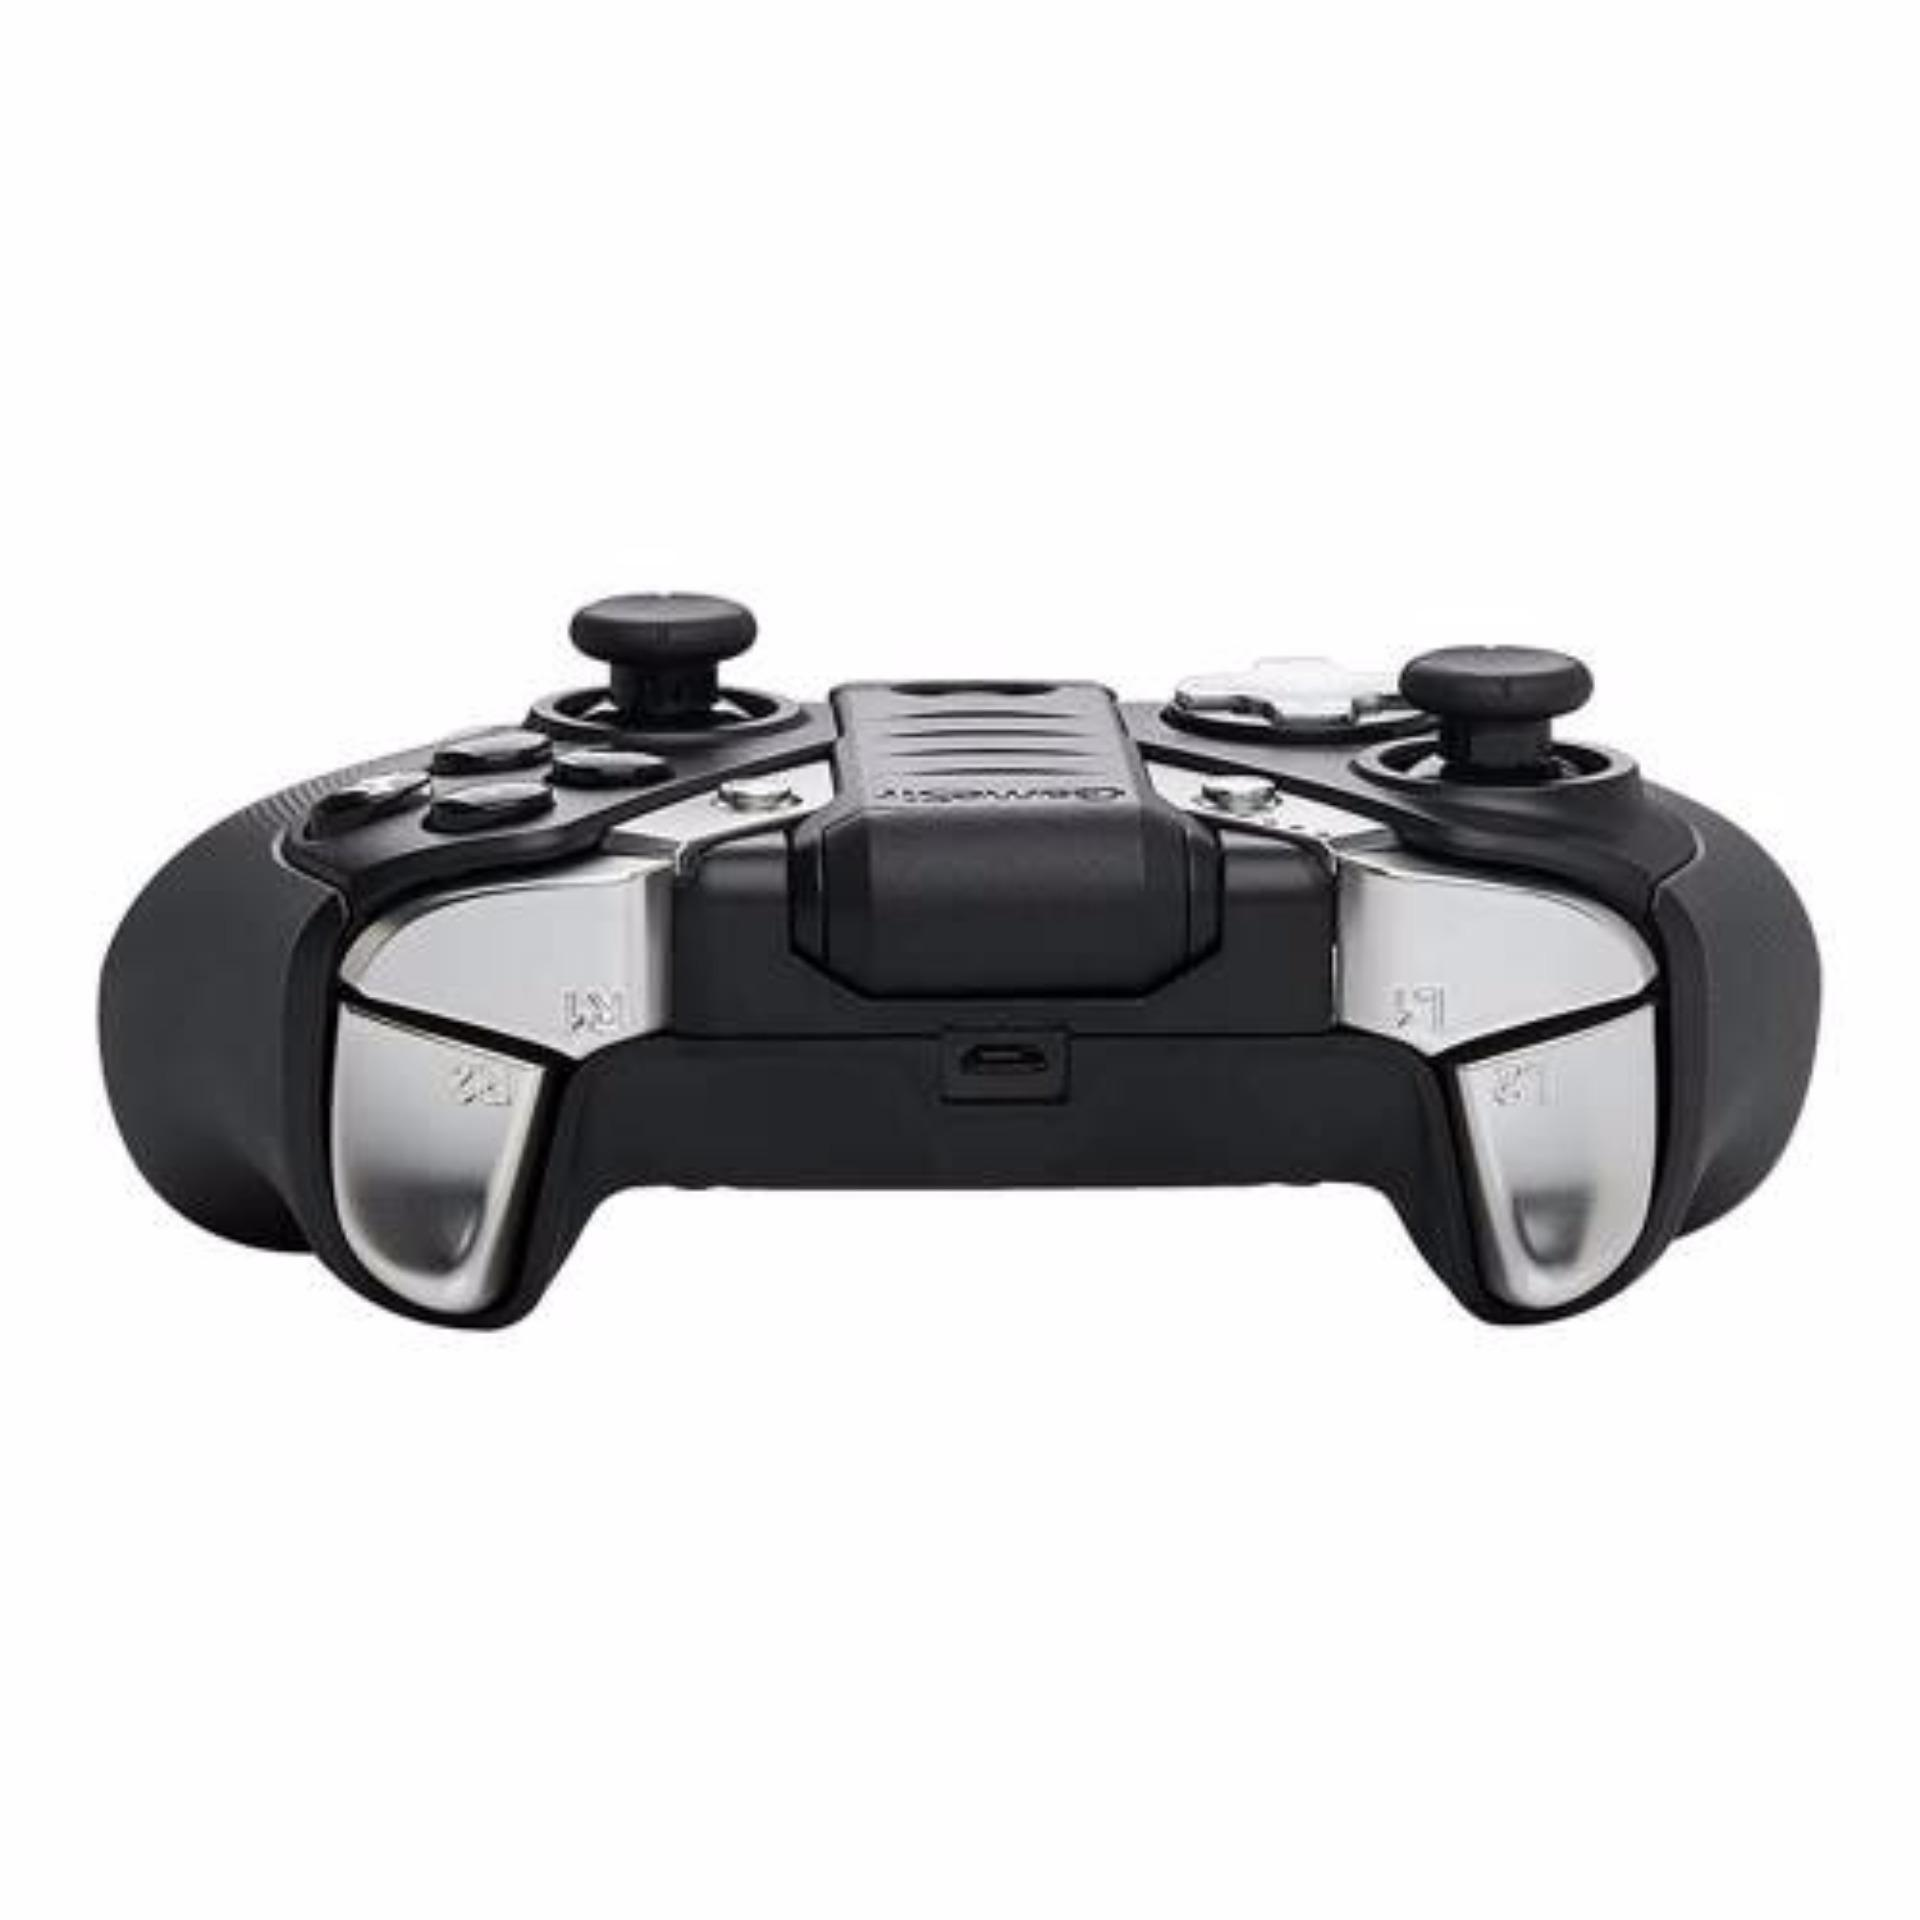 Terios T3 Play Game Tanpa Wifi Android Bluetooth Gamepad Vr Box 525 Smartphone Tv Gamesir G4 Wired Controller For Pc